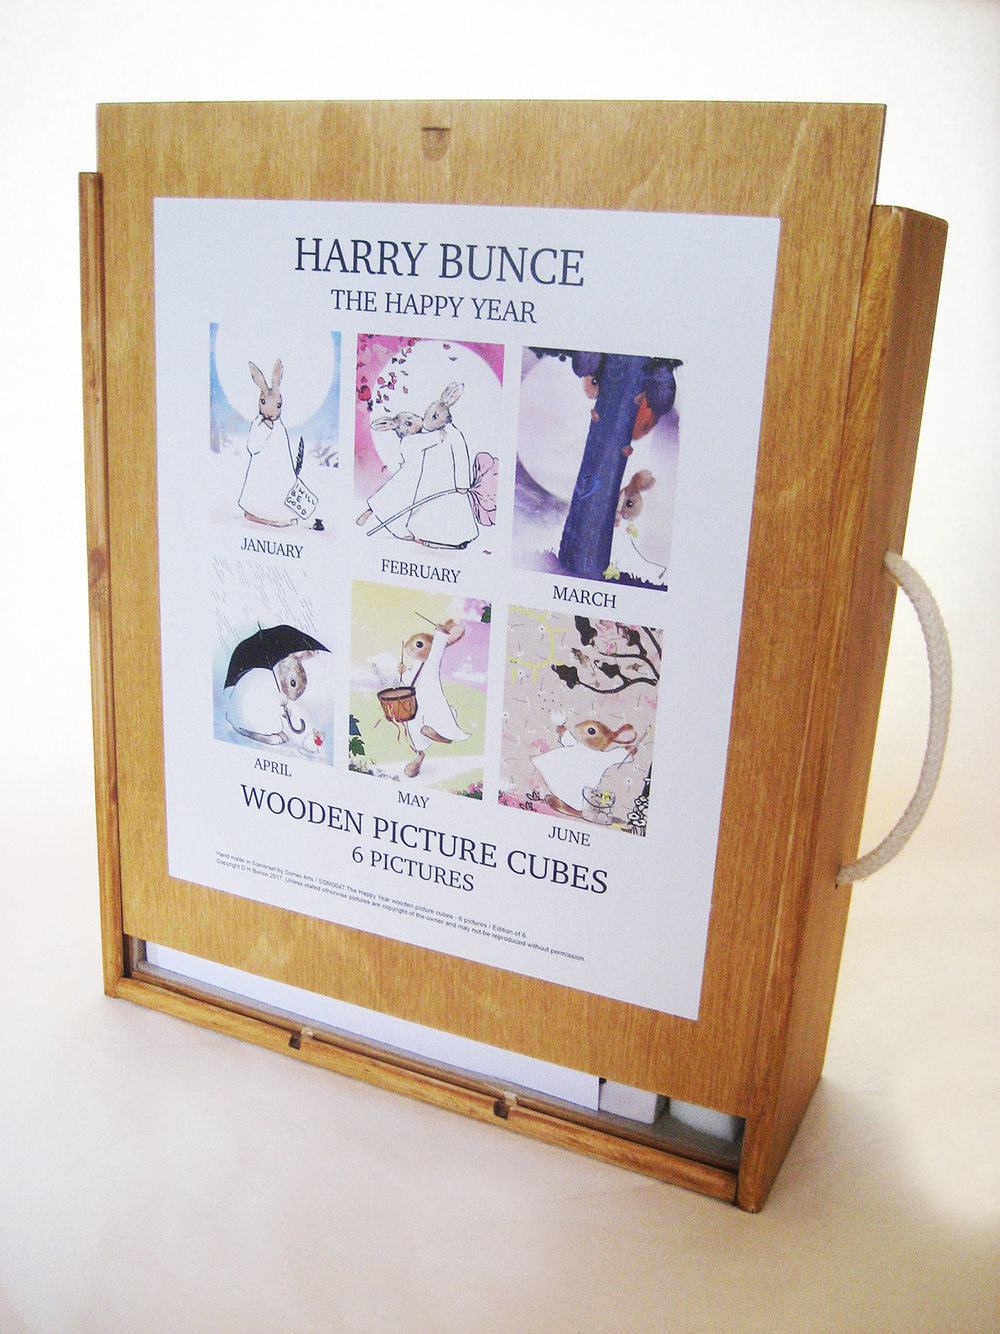 Harry Bunce - wooden picture cubes